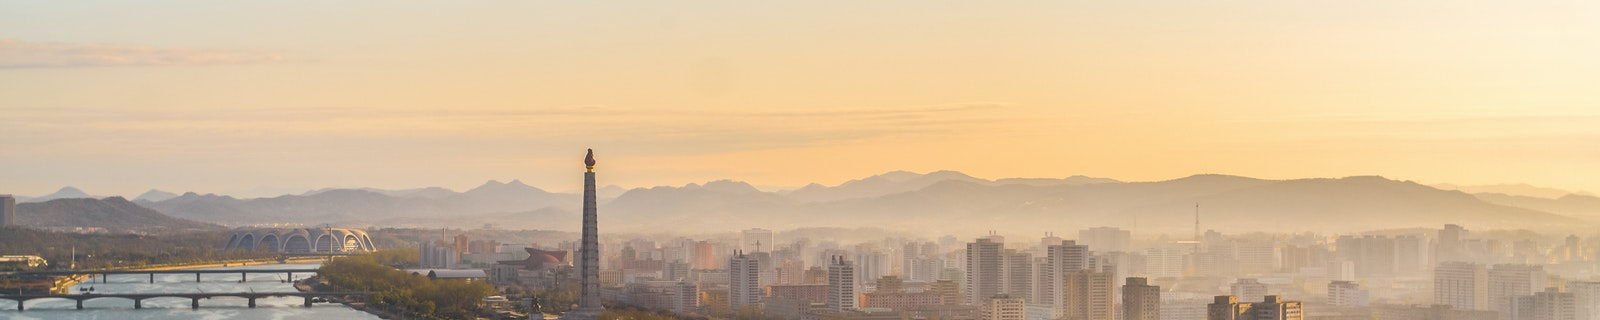 Cityscape of Pyongyang City